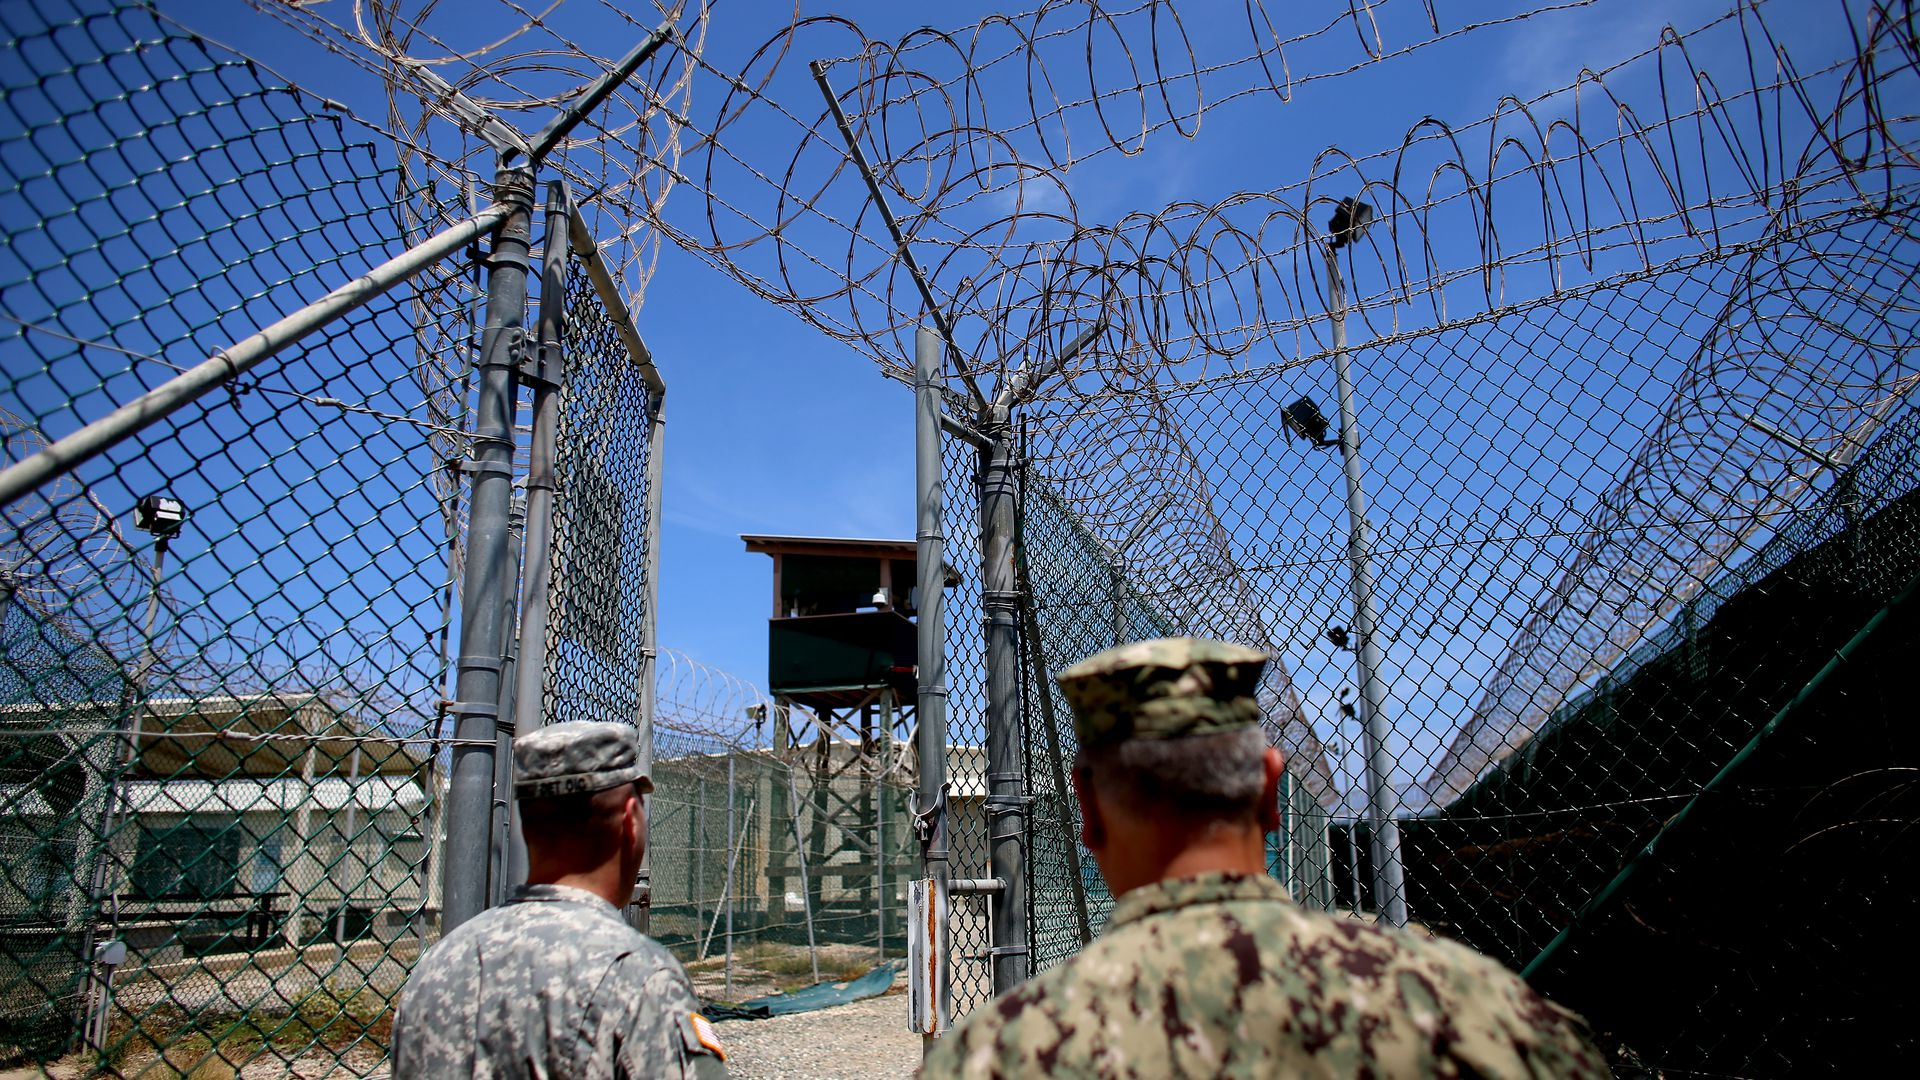 Camp Delta, part of the U.S. military prison for 'enemy combatants' on June 26, 2013 in Guantanamo Bay, Cuba.